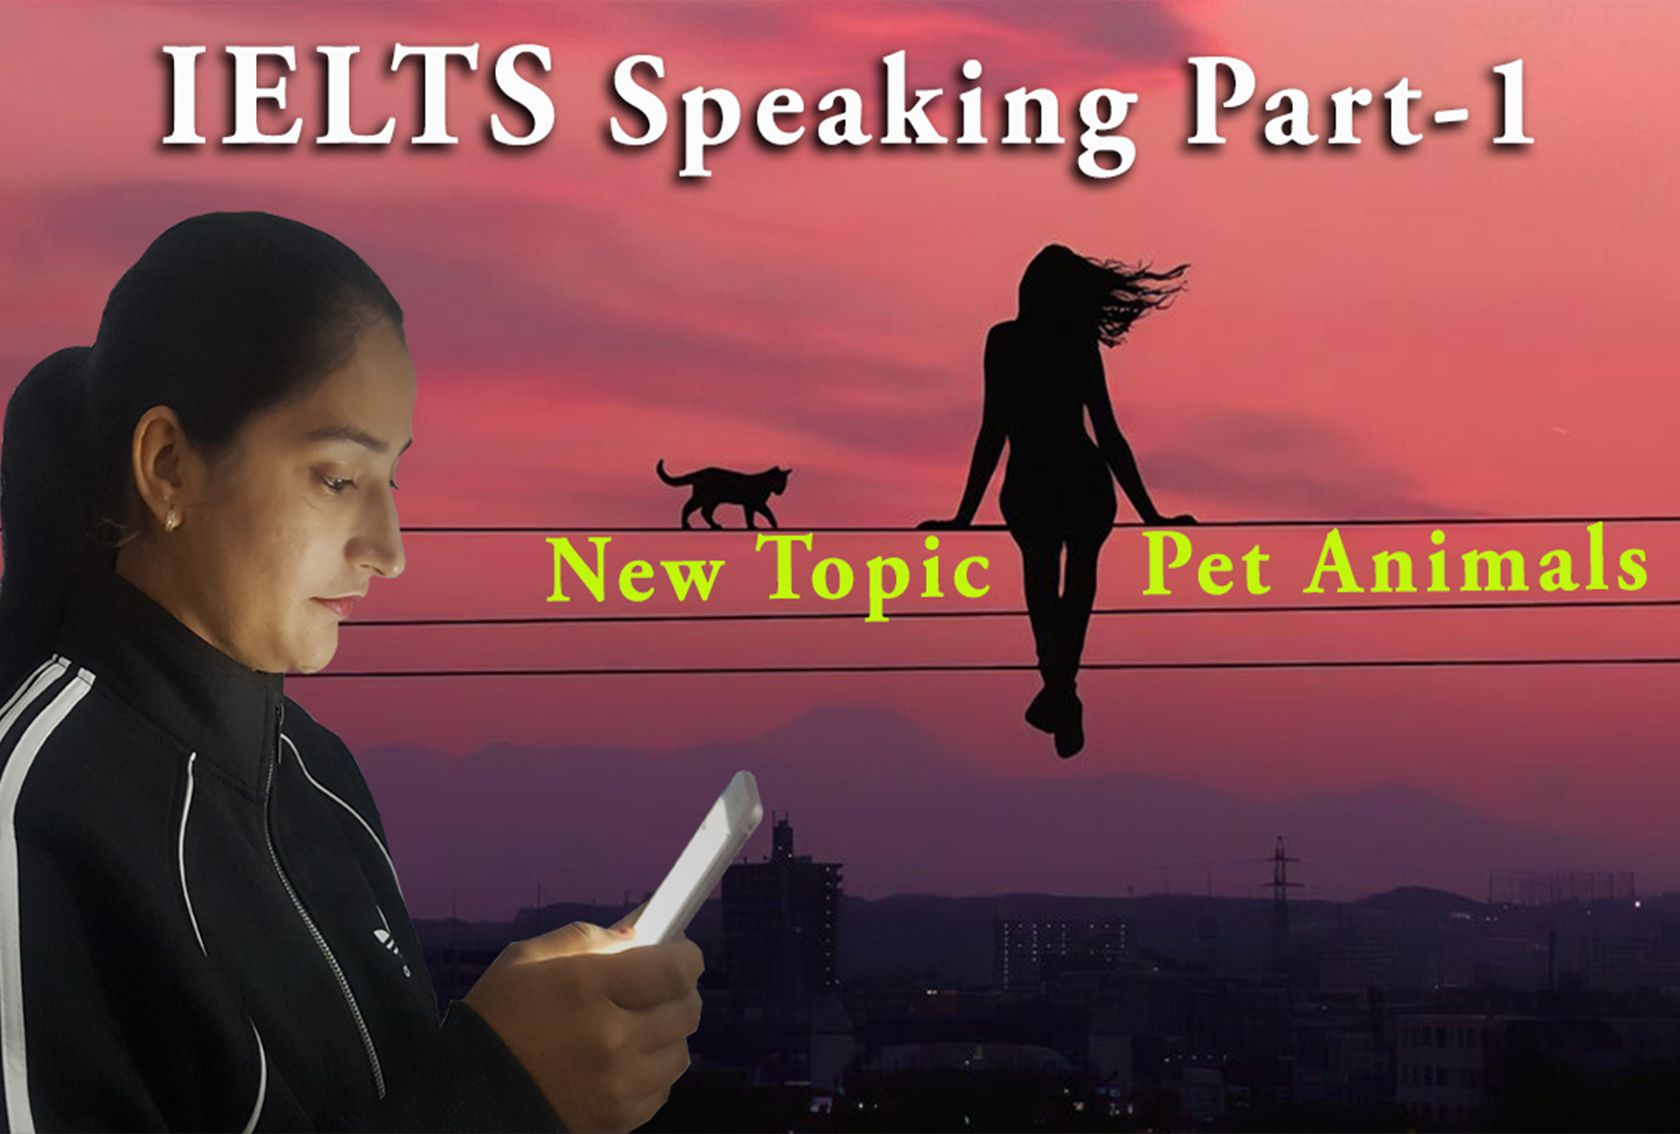 IELTS speaking part 1 | Pets and animals Intro questions | New Topic 2021